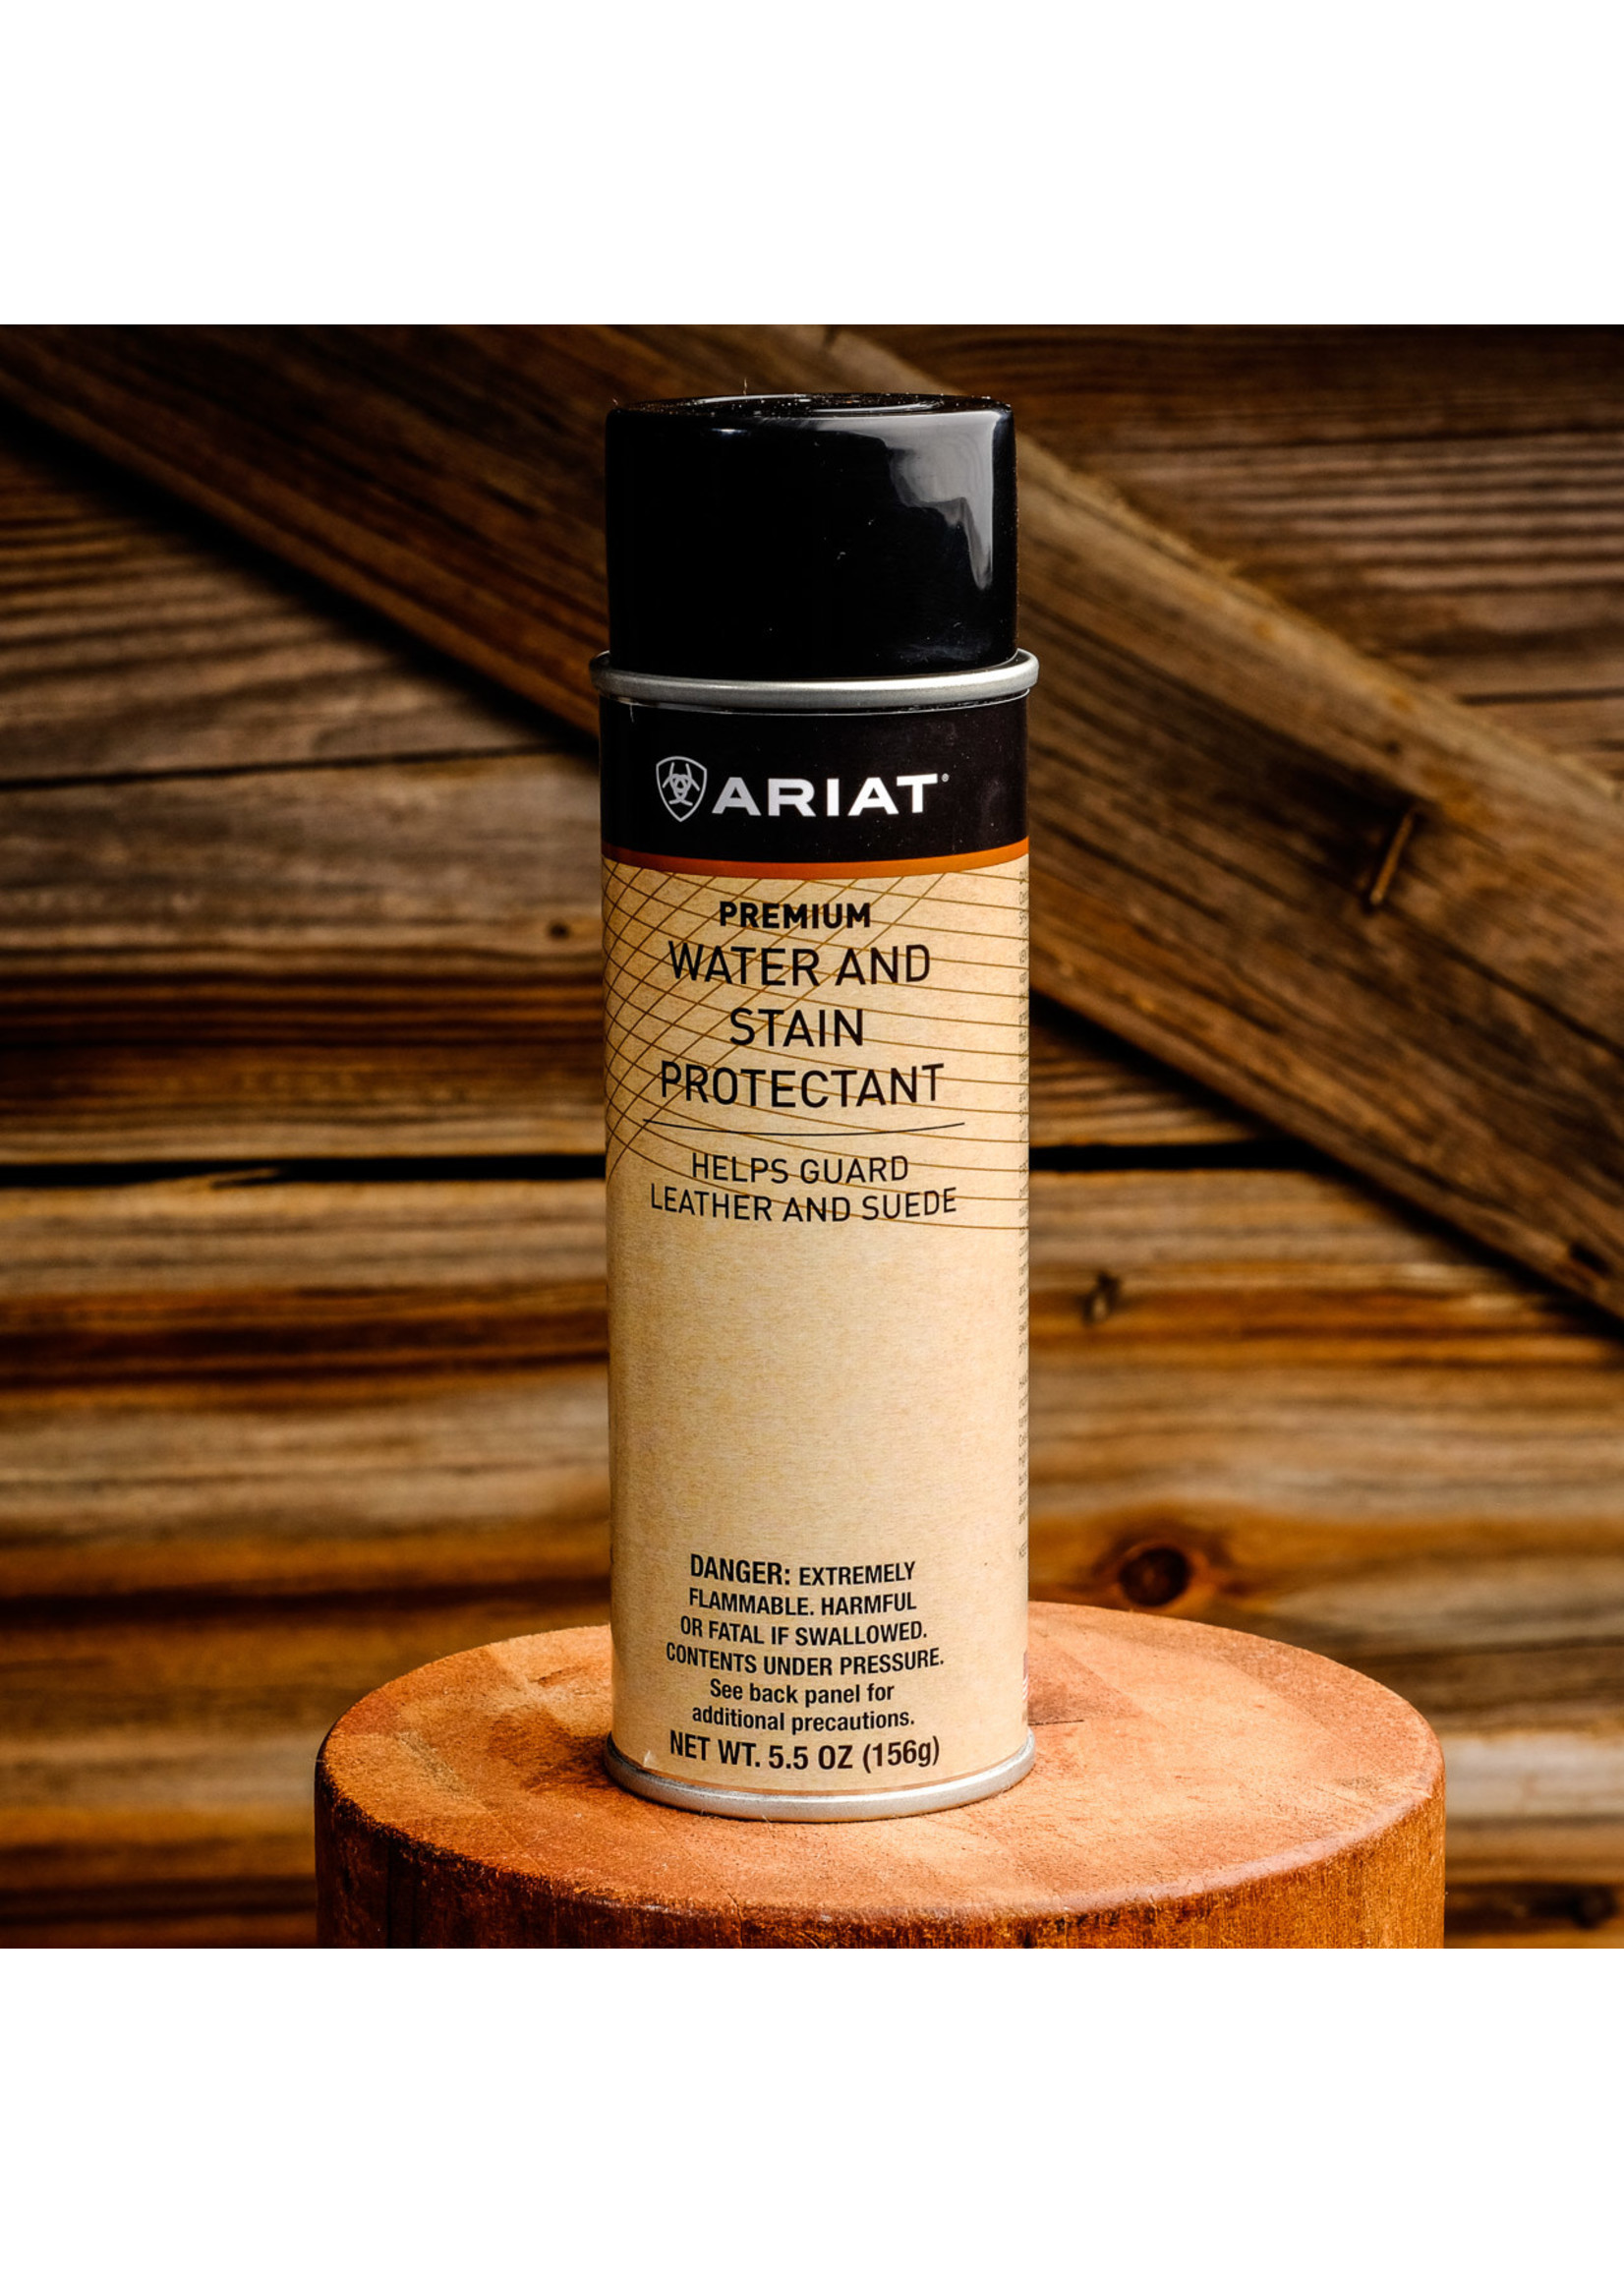 Ariat Premium Water and Stain Protectant A27022